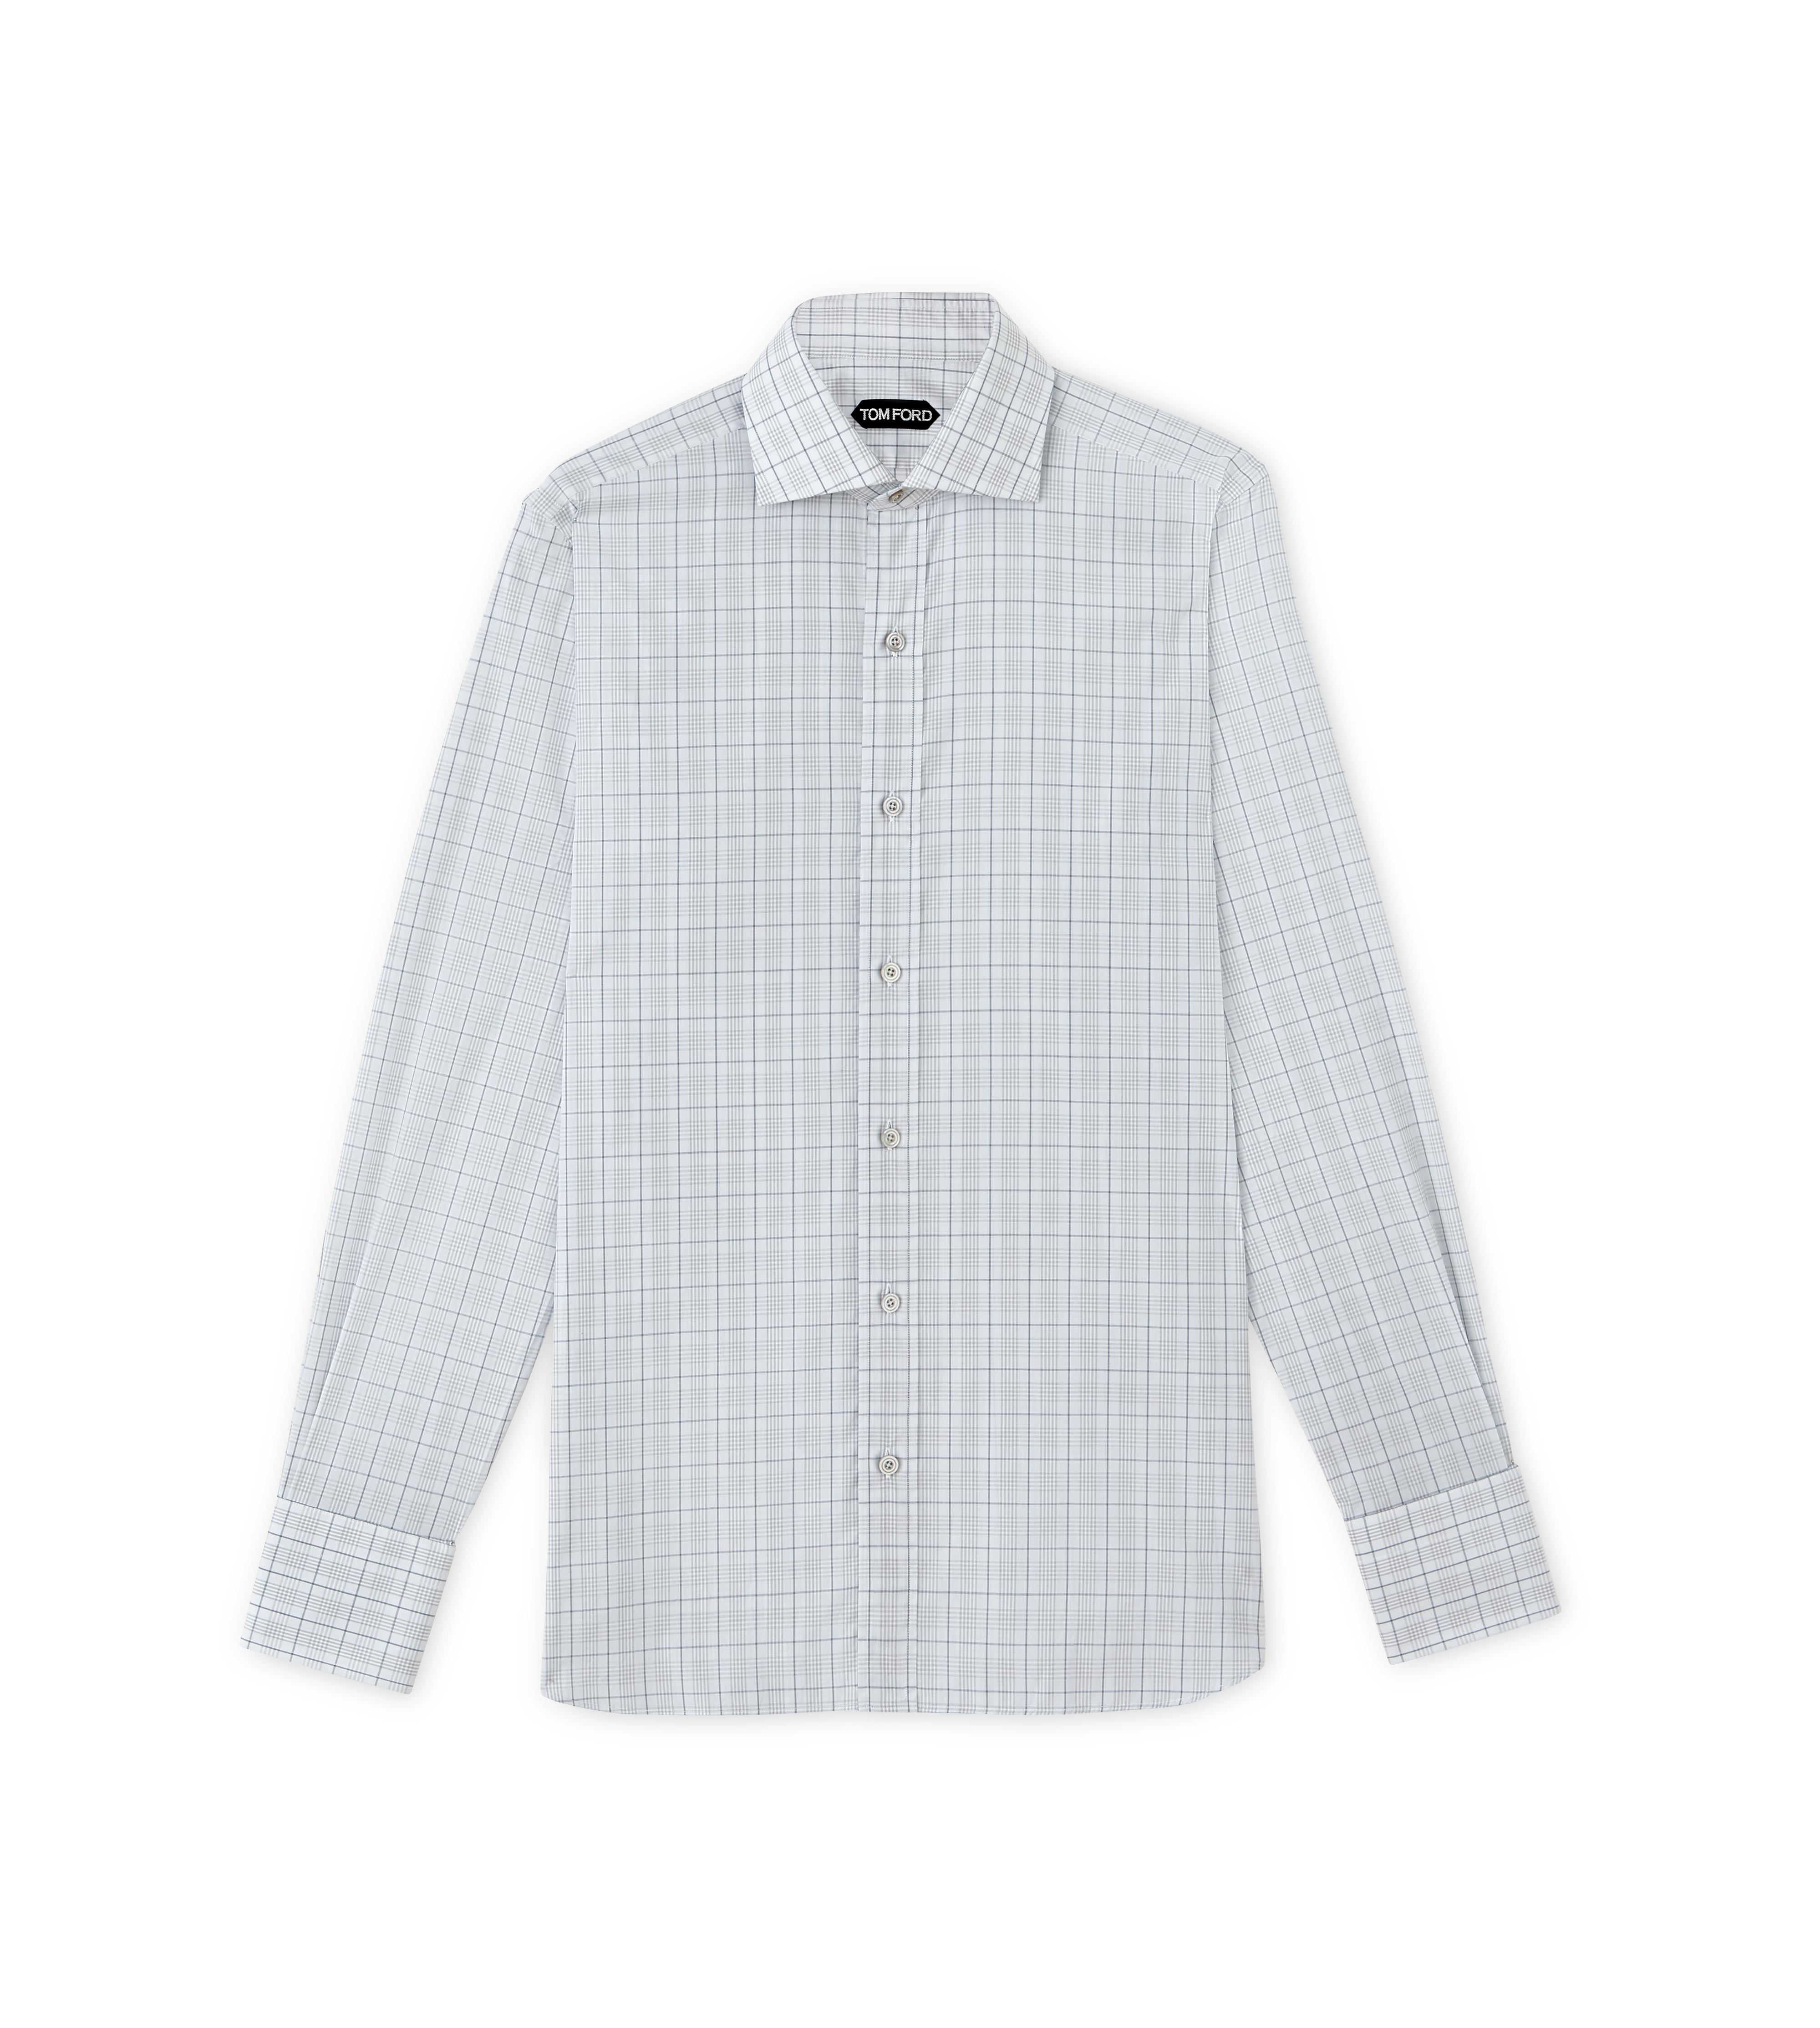 SUBTLE DARK OVERCHECK SPREAD COLLAR DAY SHIRT A thumbnail